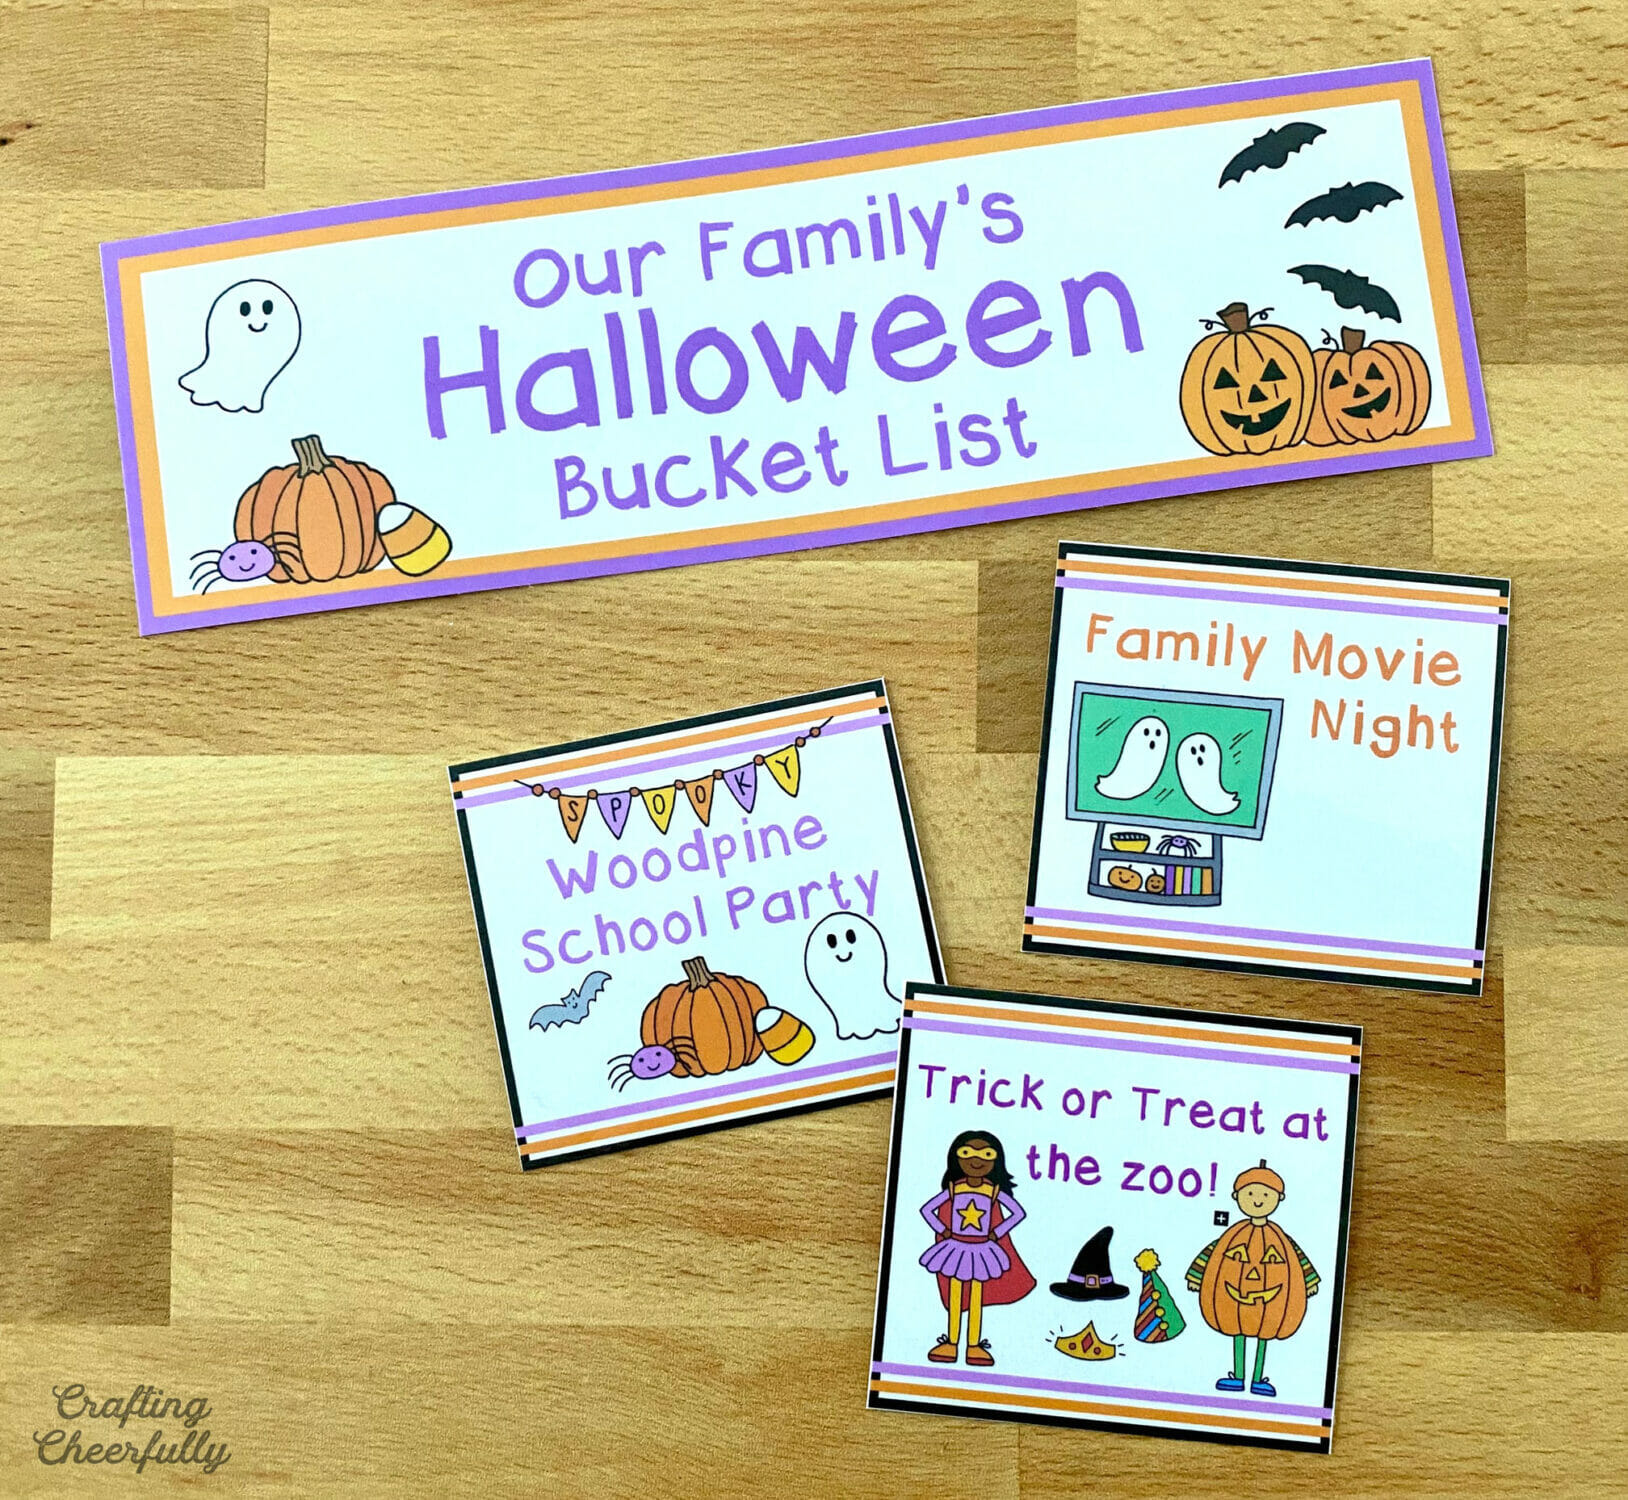 Personalize Halloween bucket list cards lay on a table top.